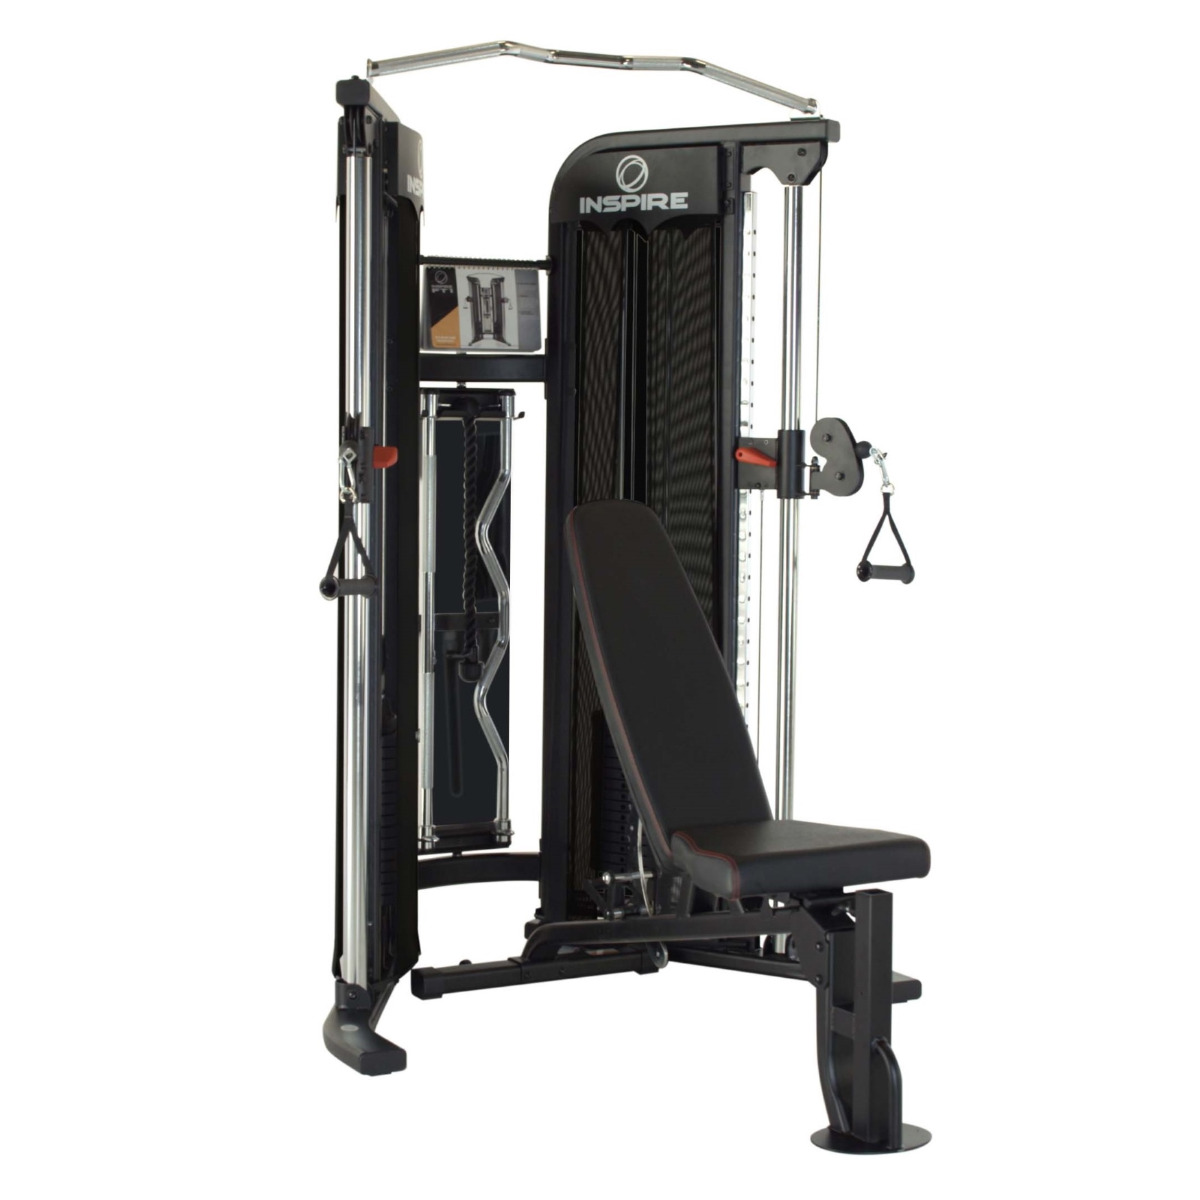 Inspire FT1 Functional Trainer Package (Incl Bench & Add-on Weight Kit)